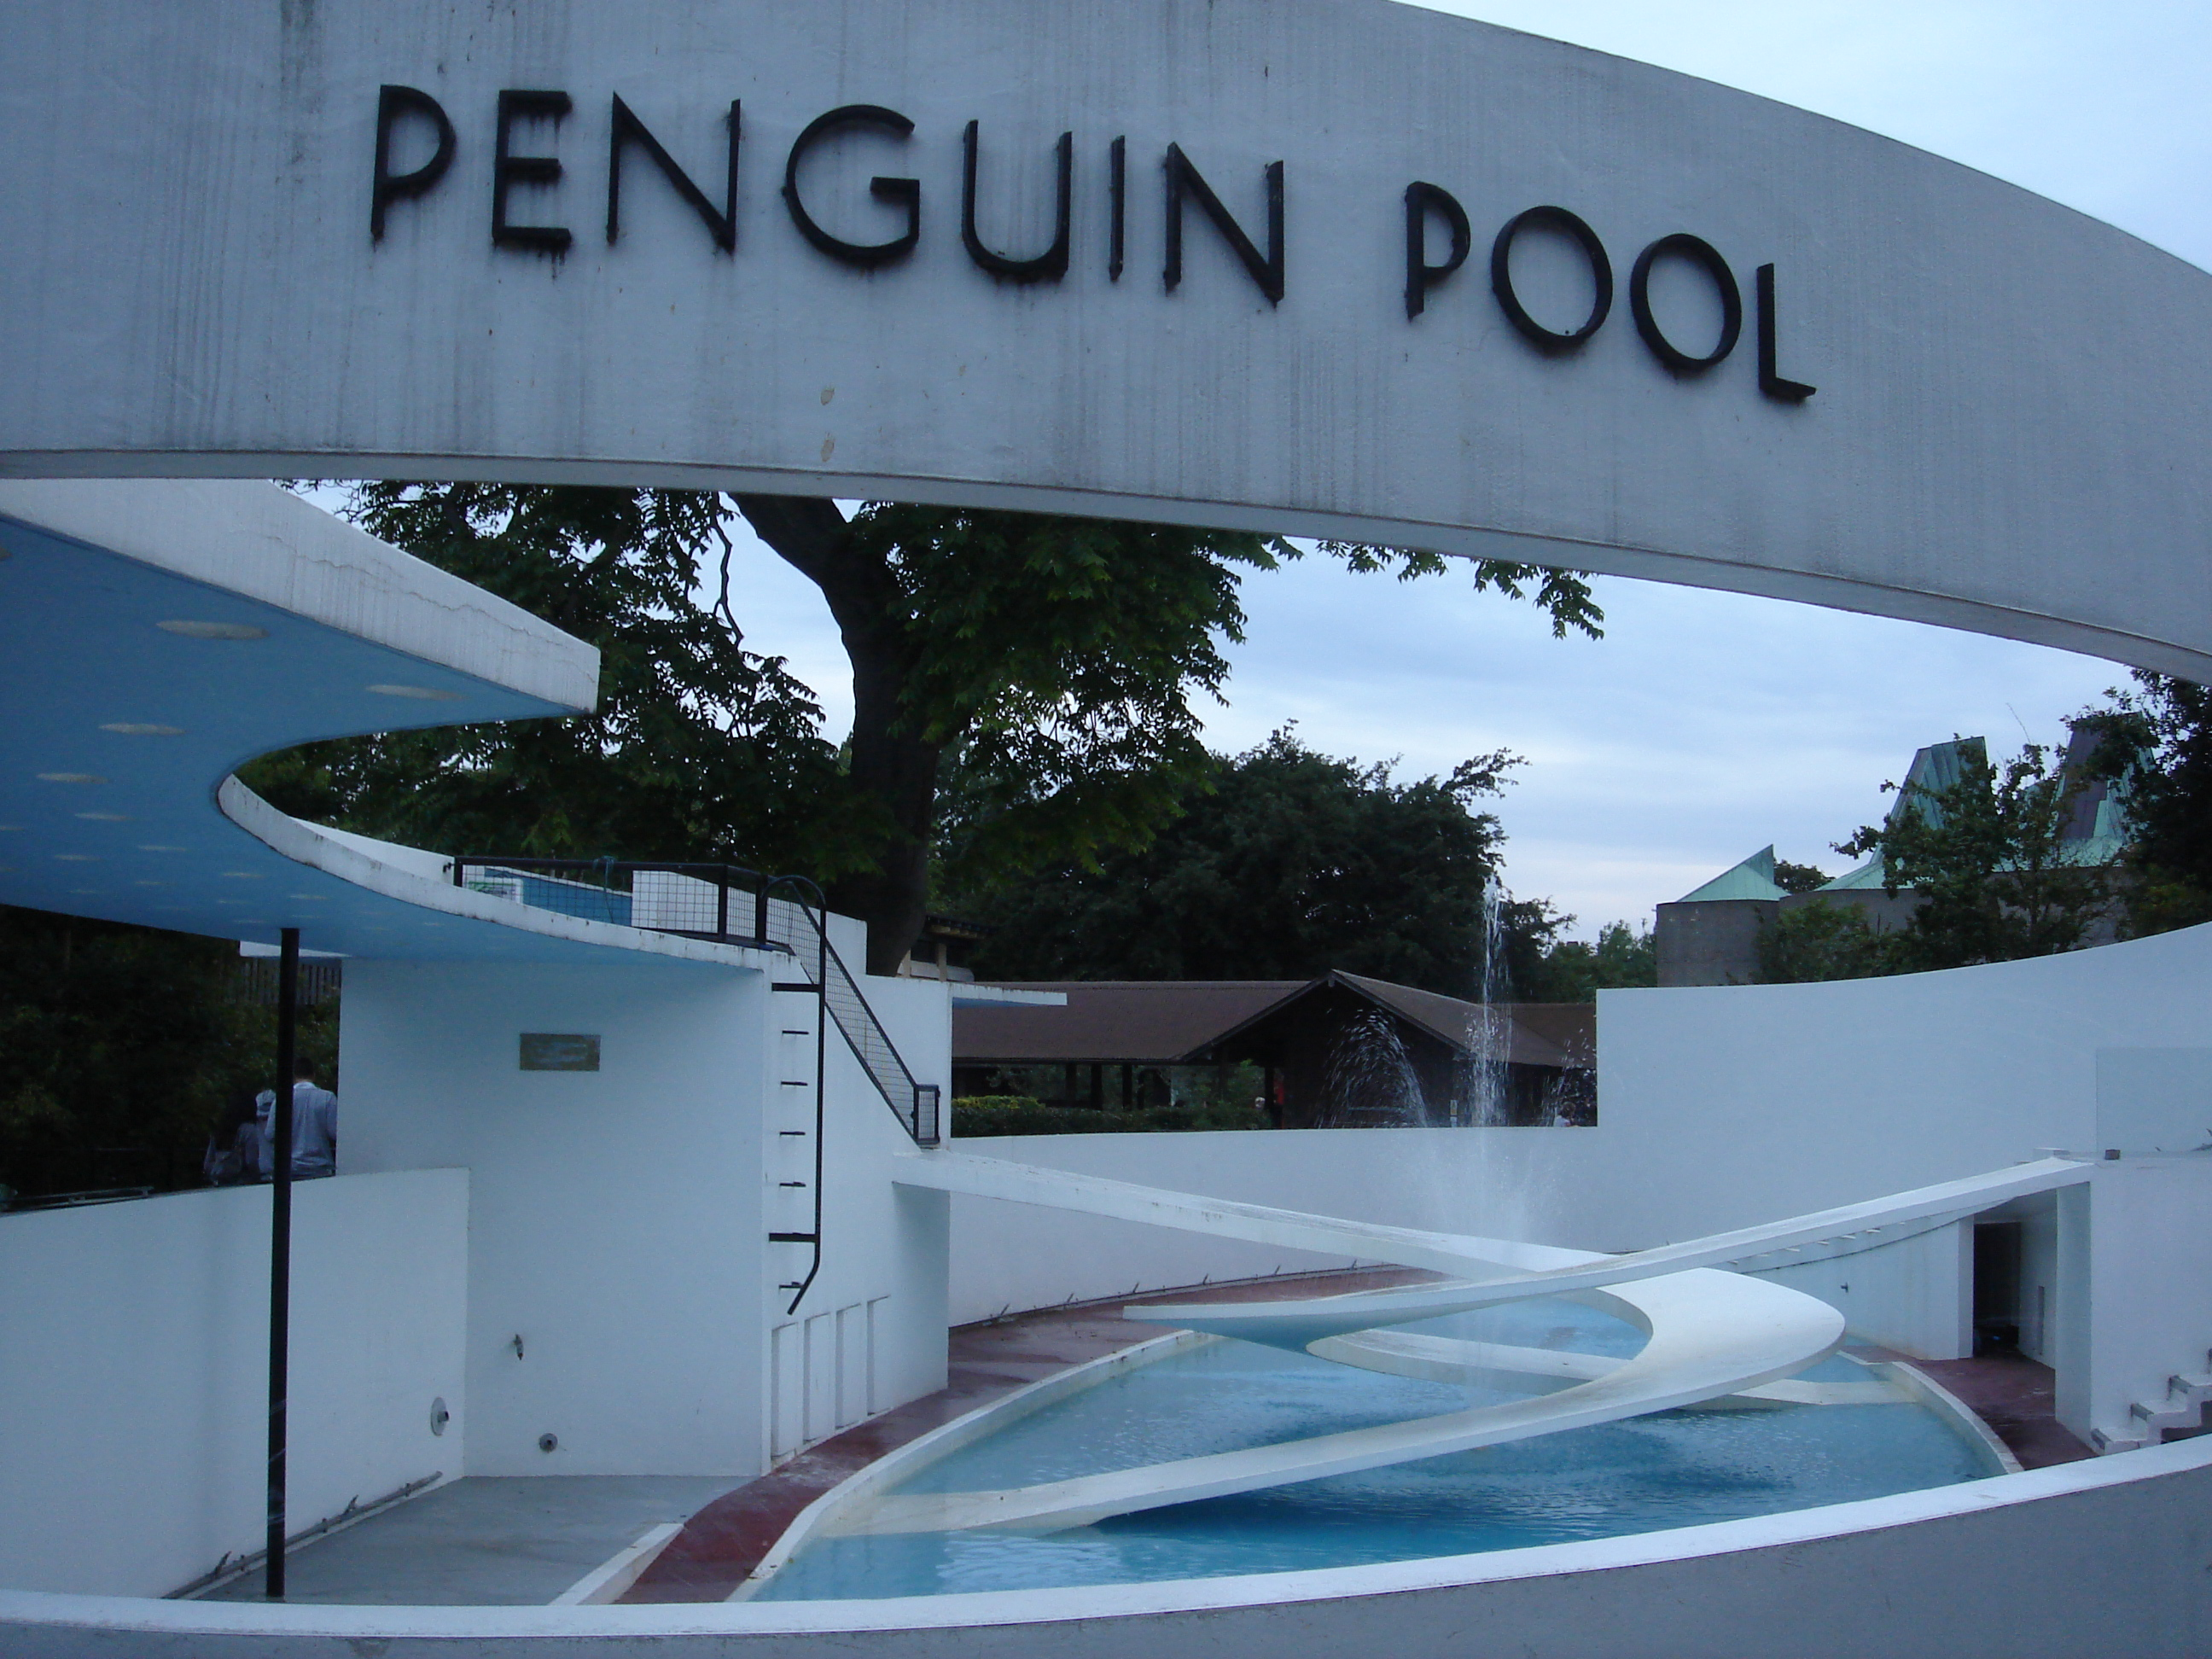 Penguin Pool, London Zoo.JPG